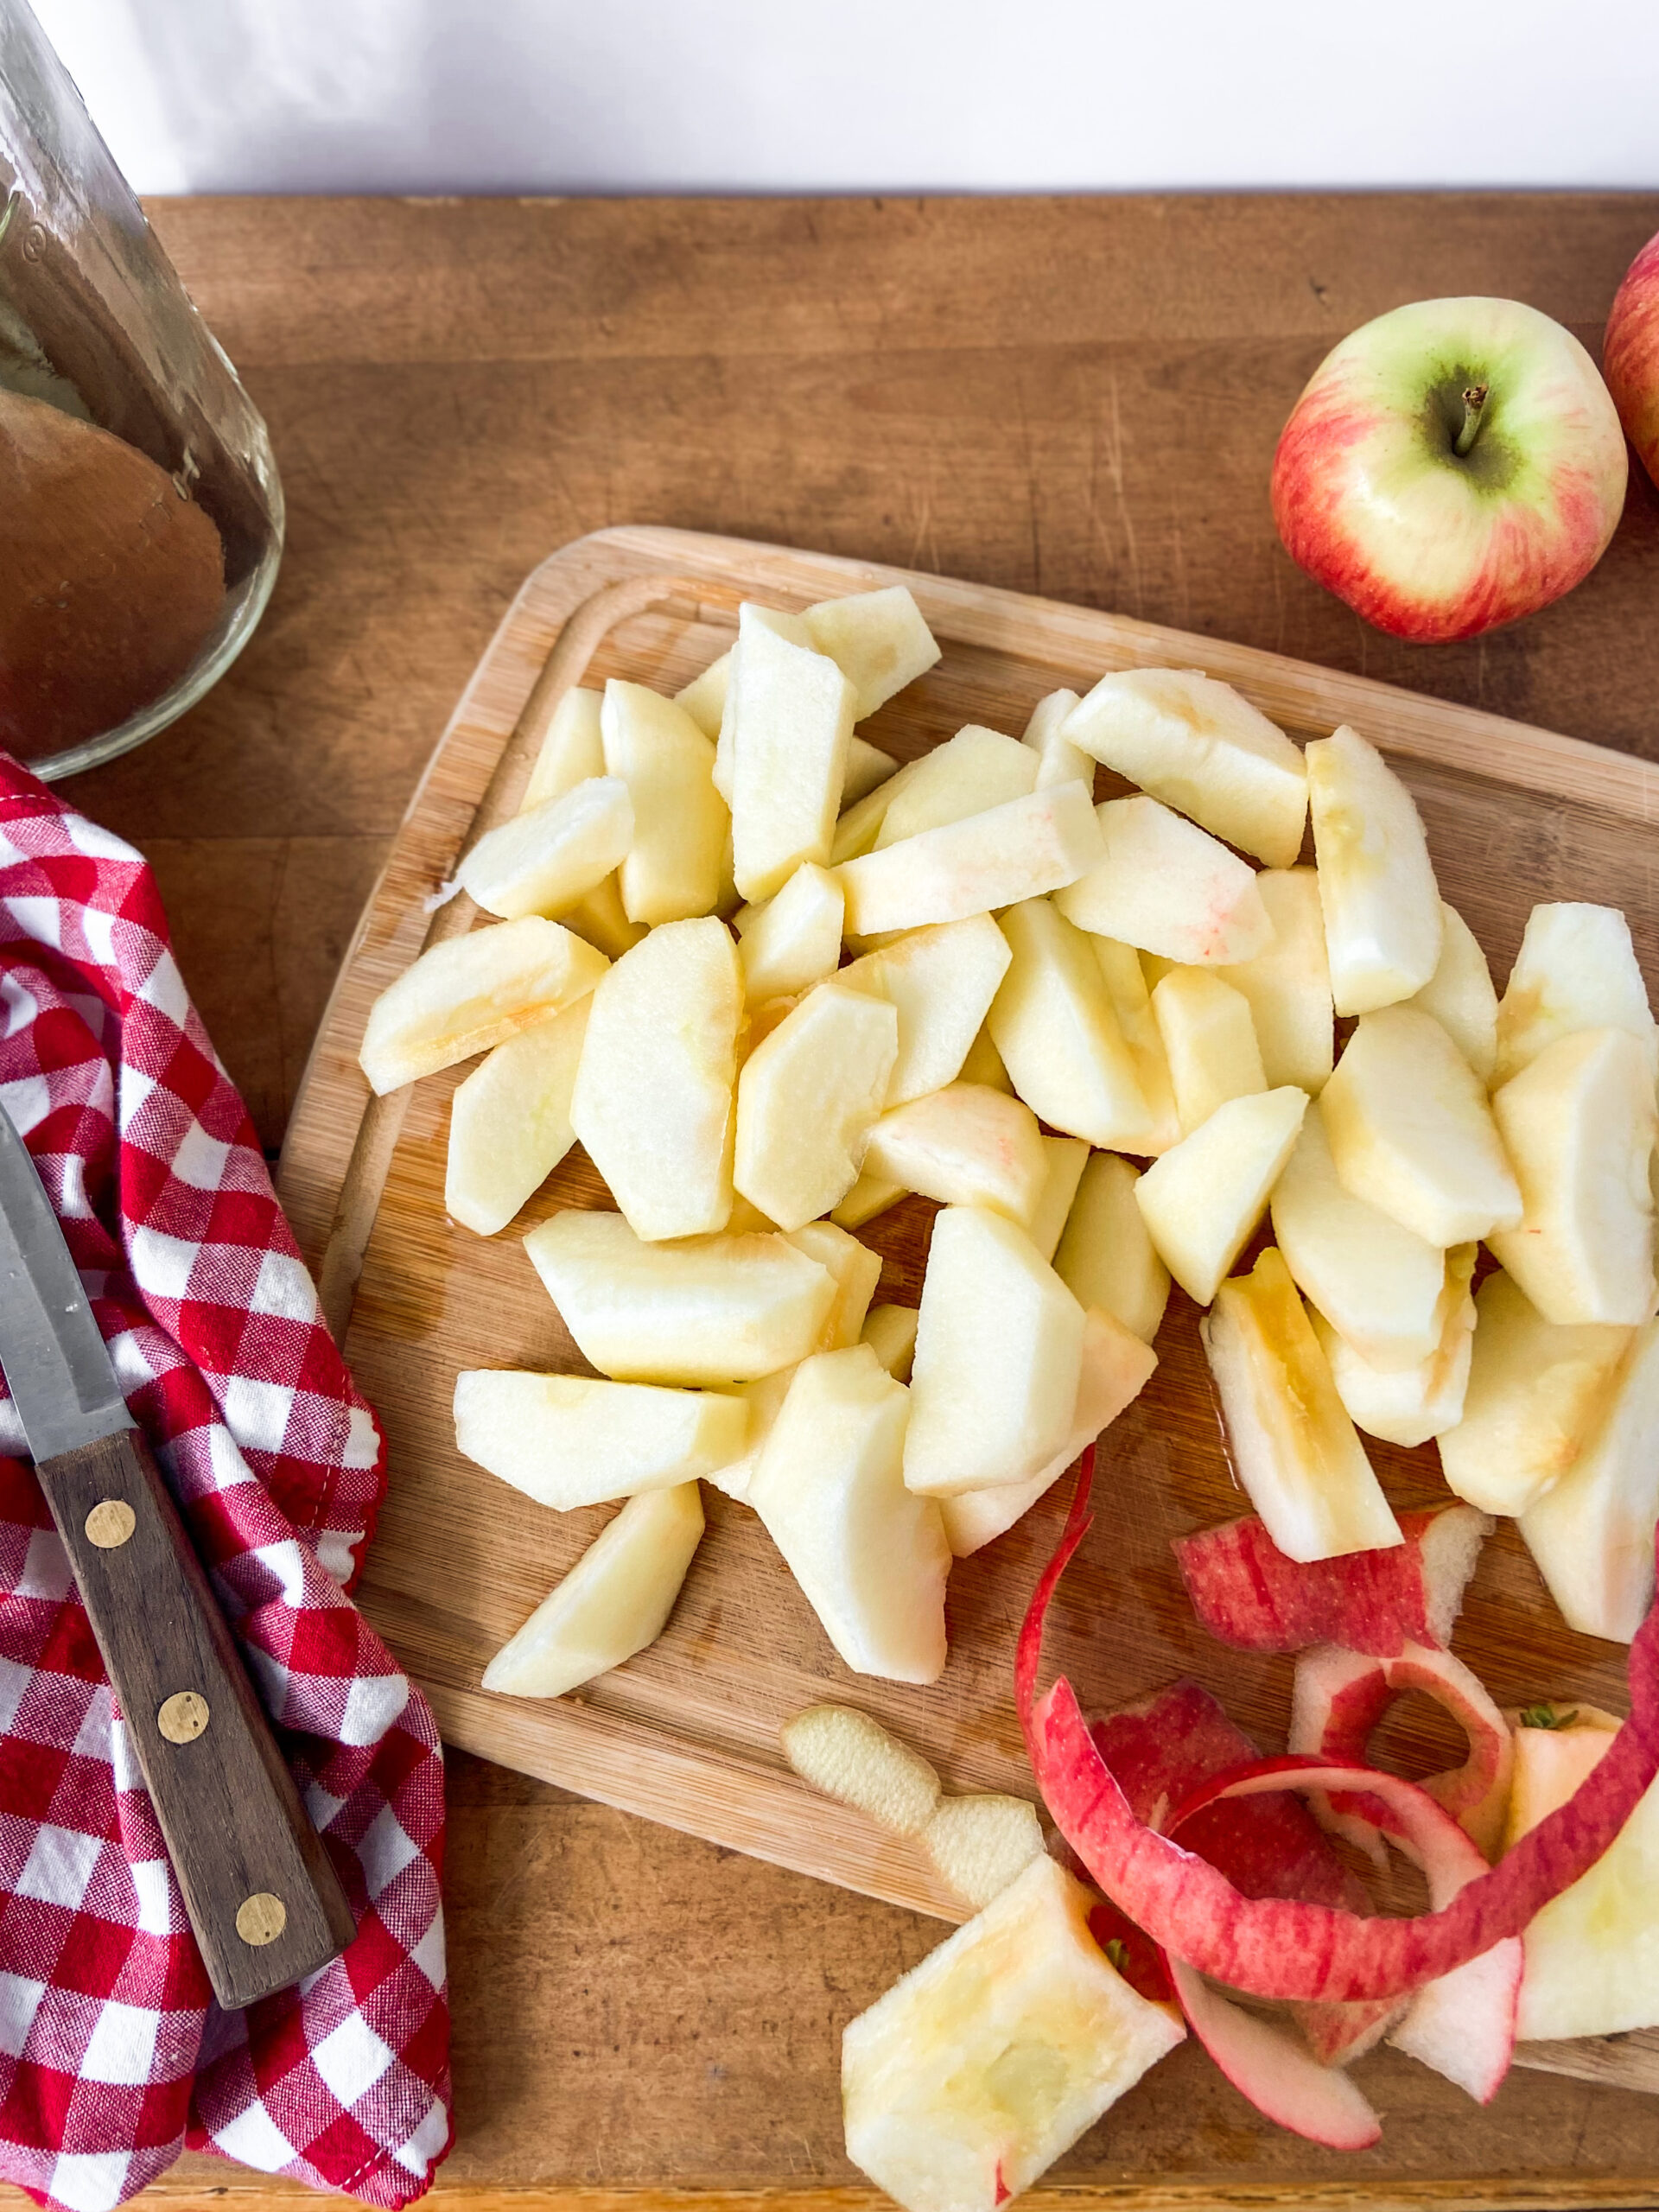 How To Freeze Apples - This Farm Girl Cooks